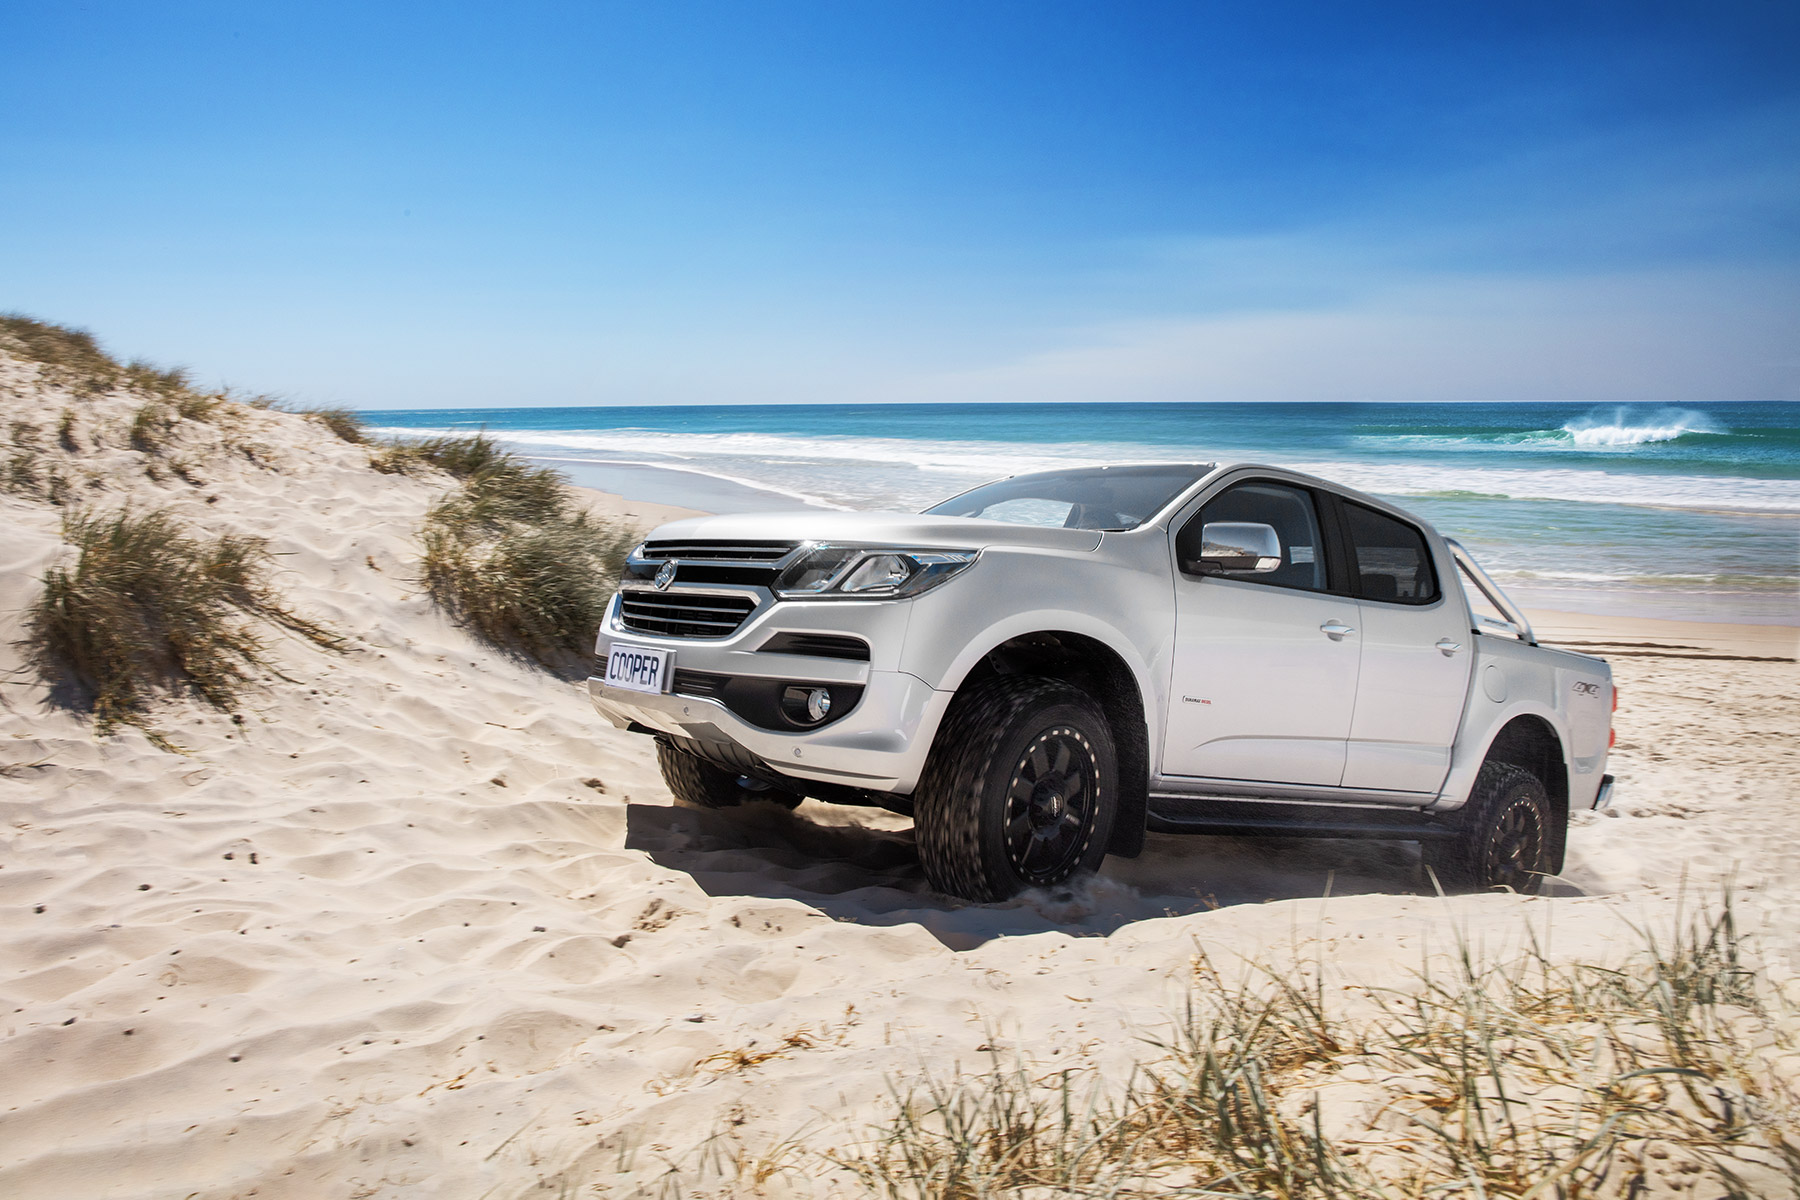 4WD on Australian beach during summer